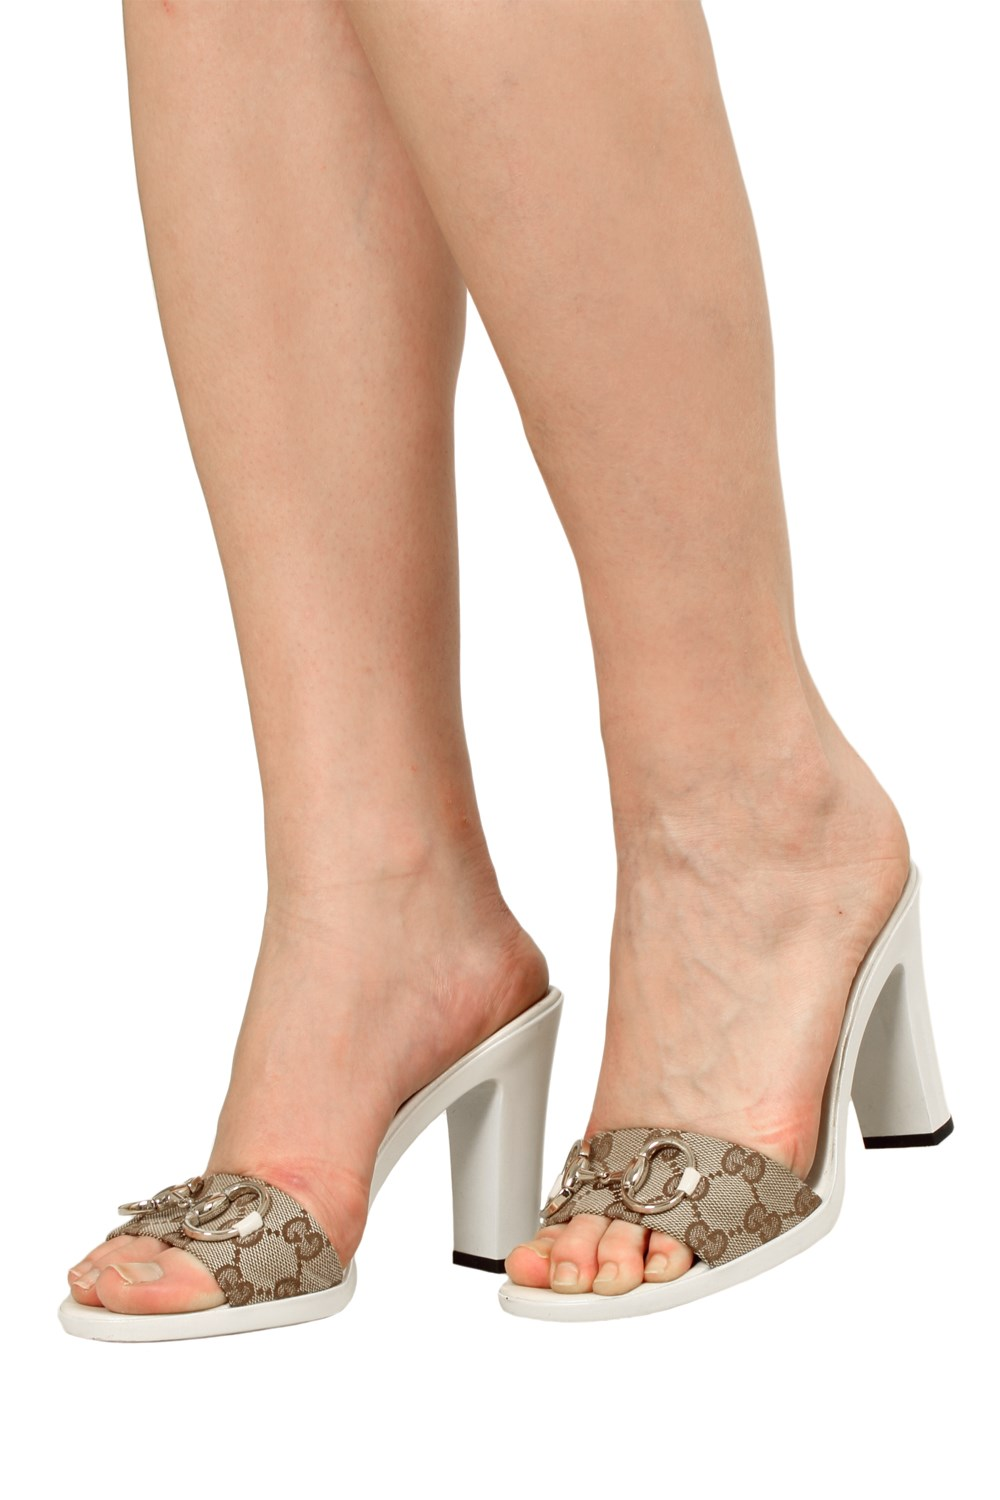 gg canvas white mules with horsebit mules high heeled